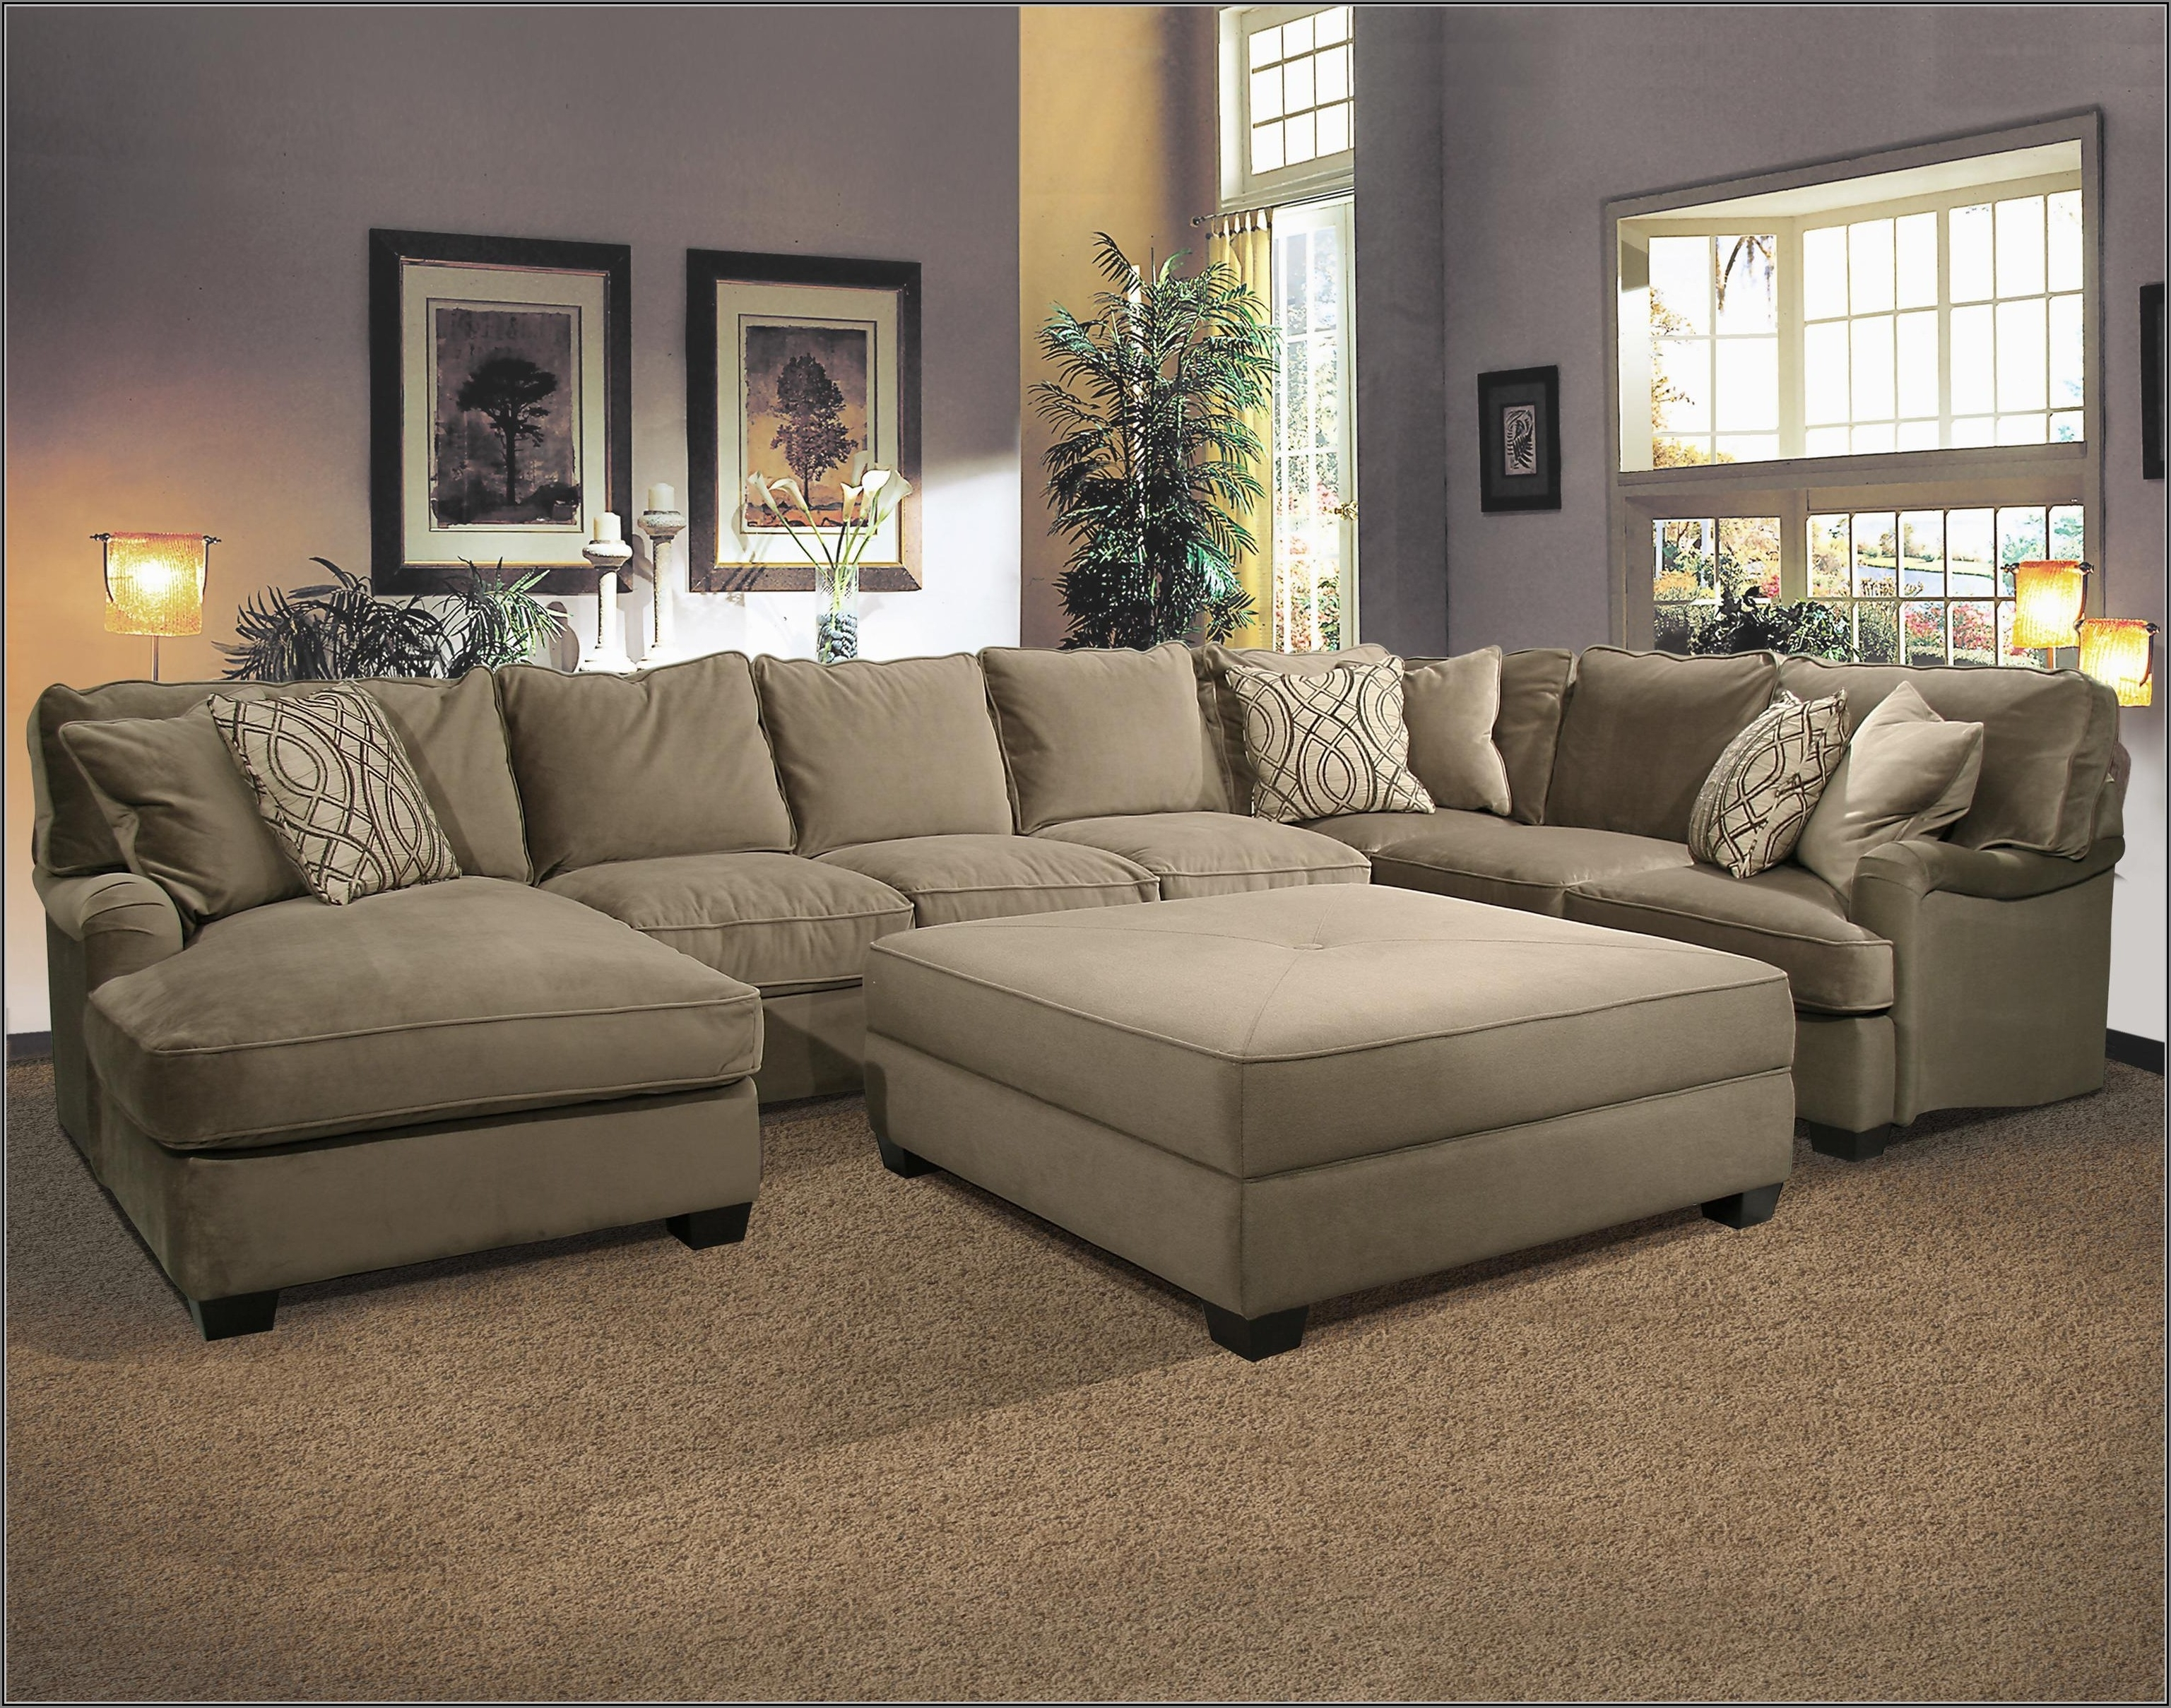 Fashionable Sectional Couches With Large Ottoman Throughout Sectional Sofa With Large Ottoman Hotelsbacau Com Intended For (View 7 of 20)